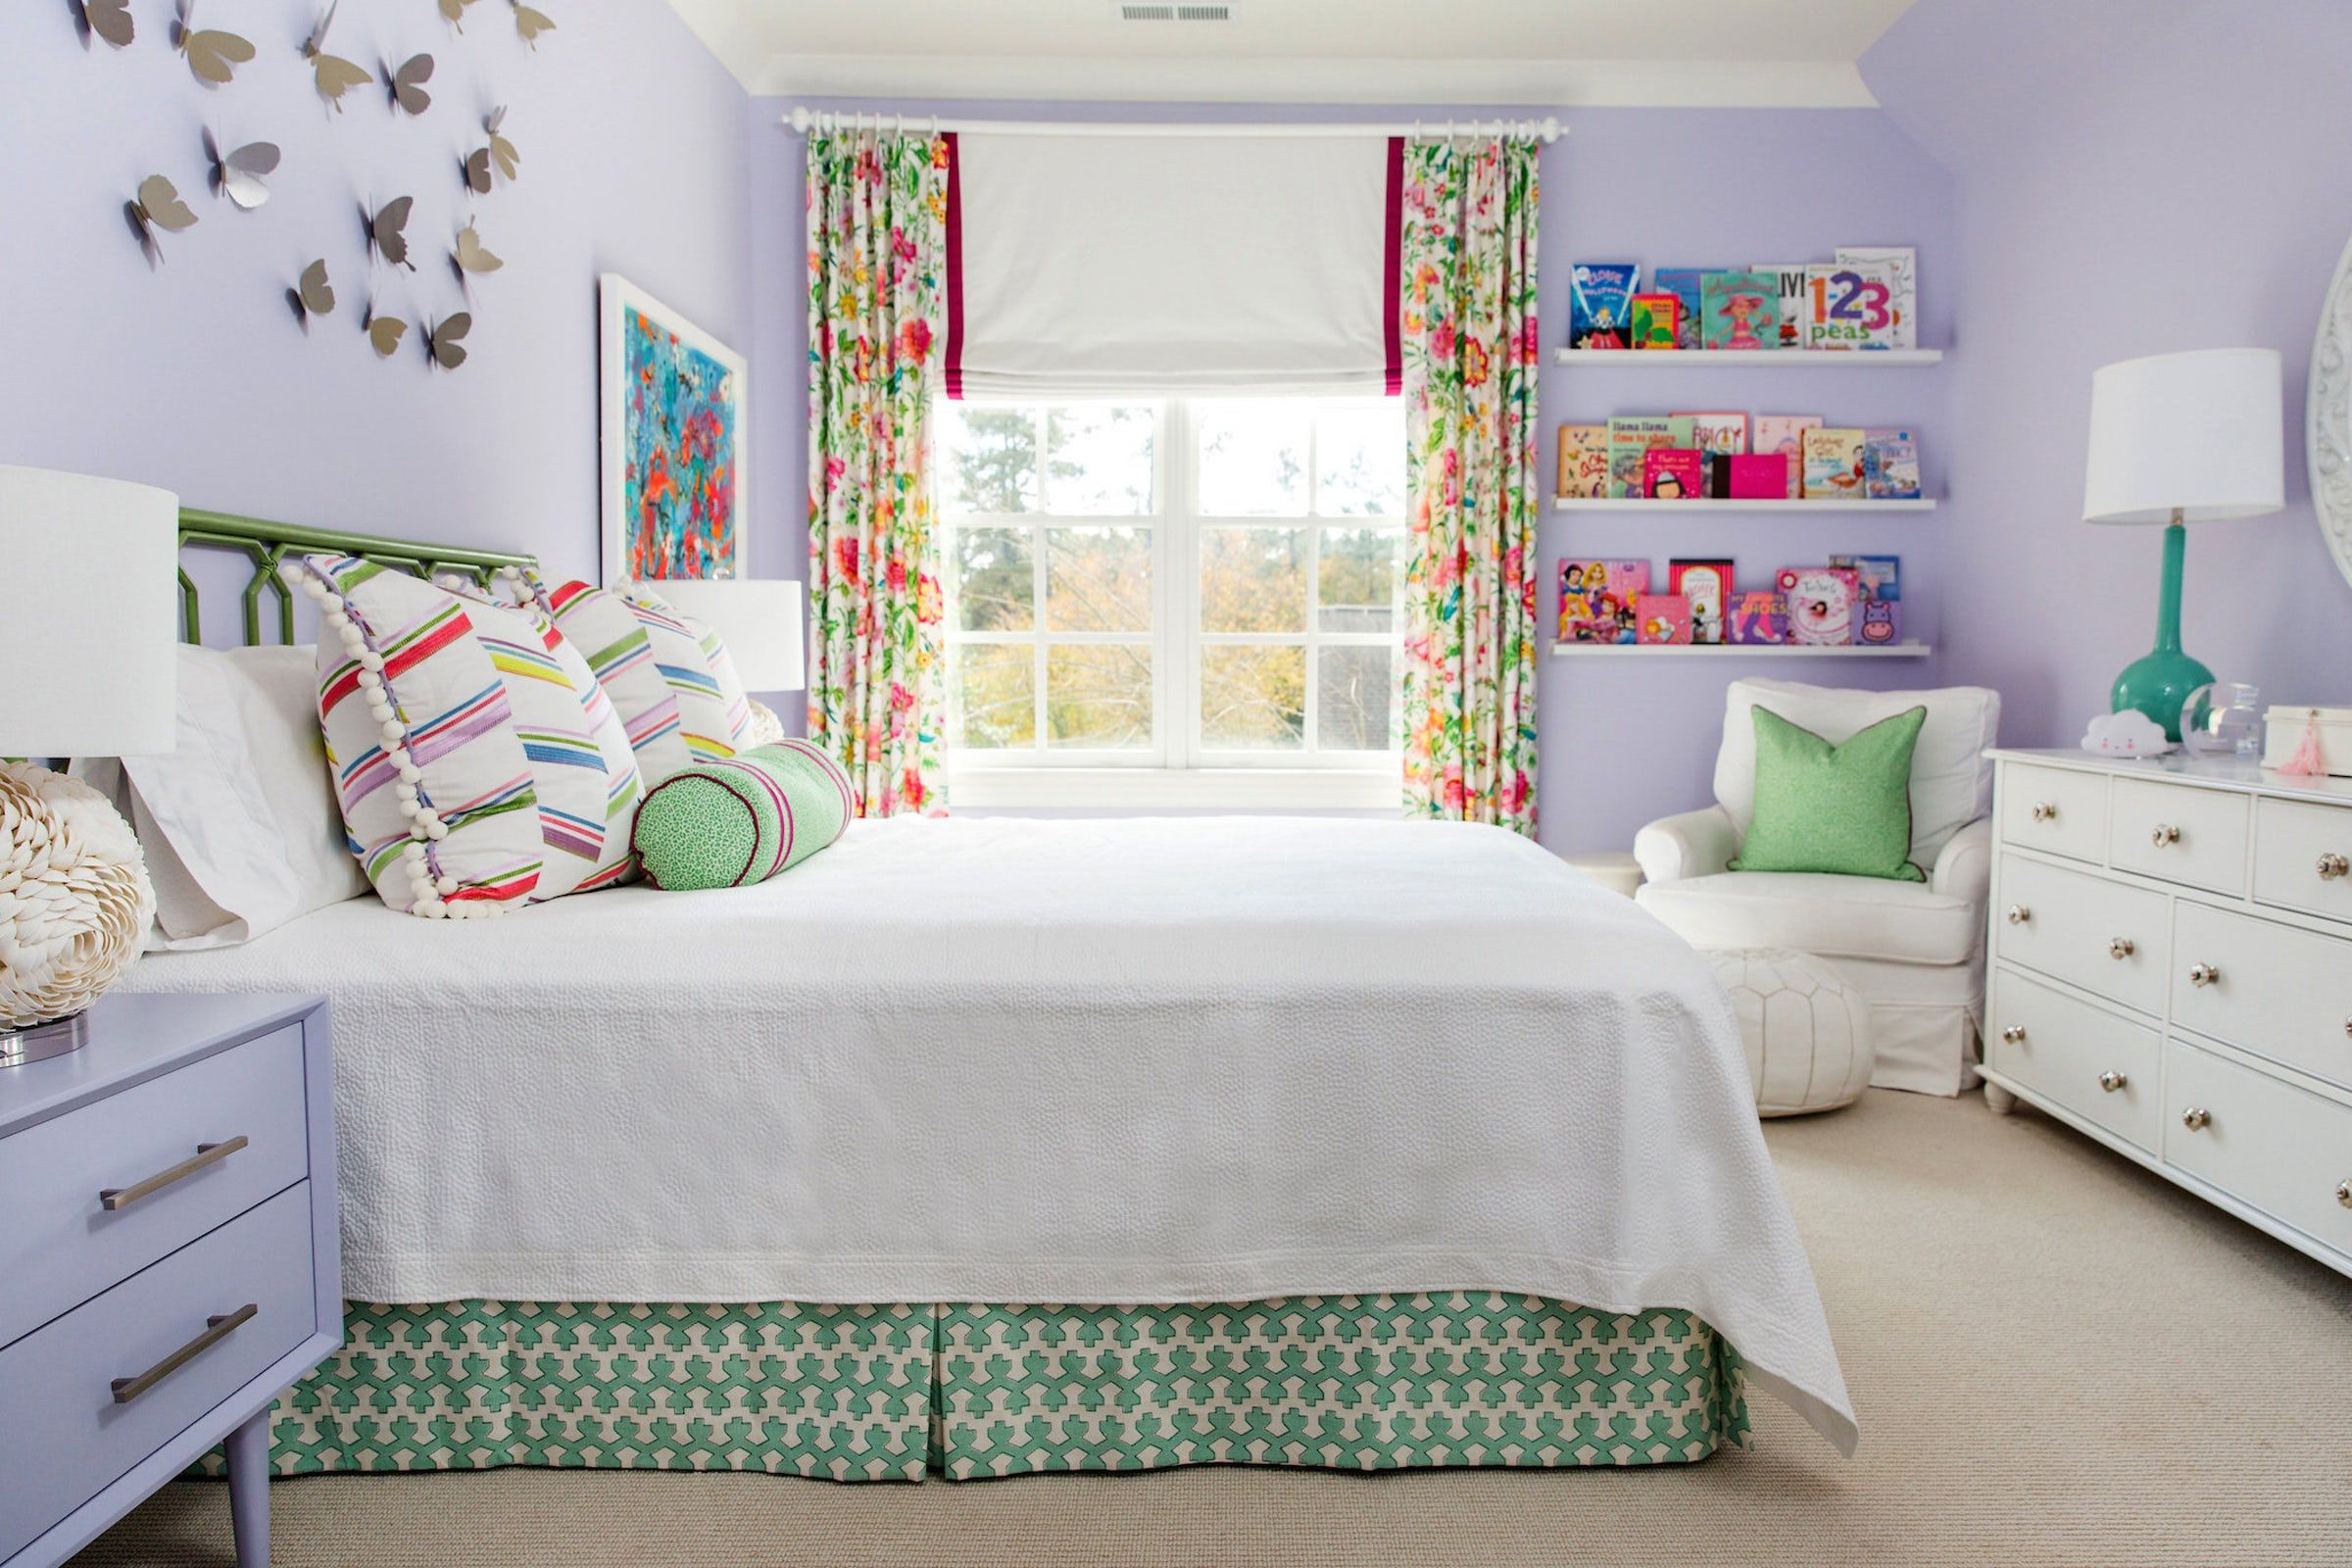 15 Creative Girls Room Ideas - How to Decorate a Girl's ... on Decorate Girls Room  id=47050